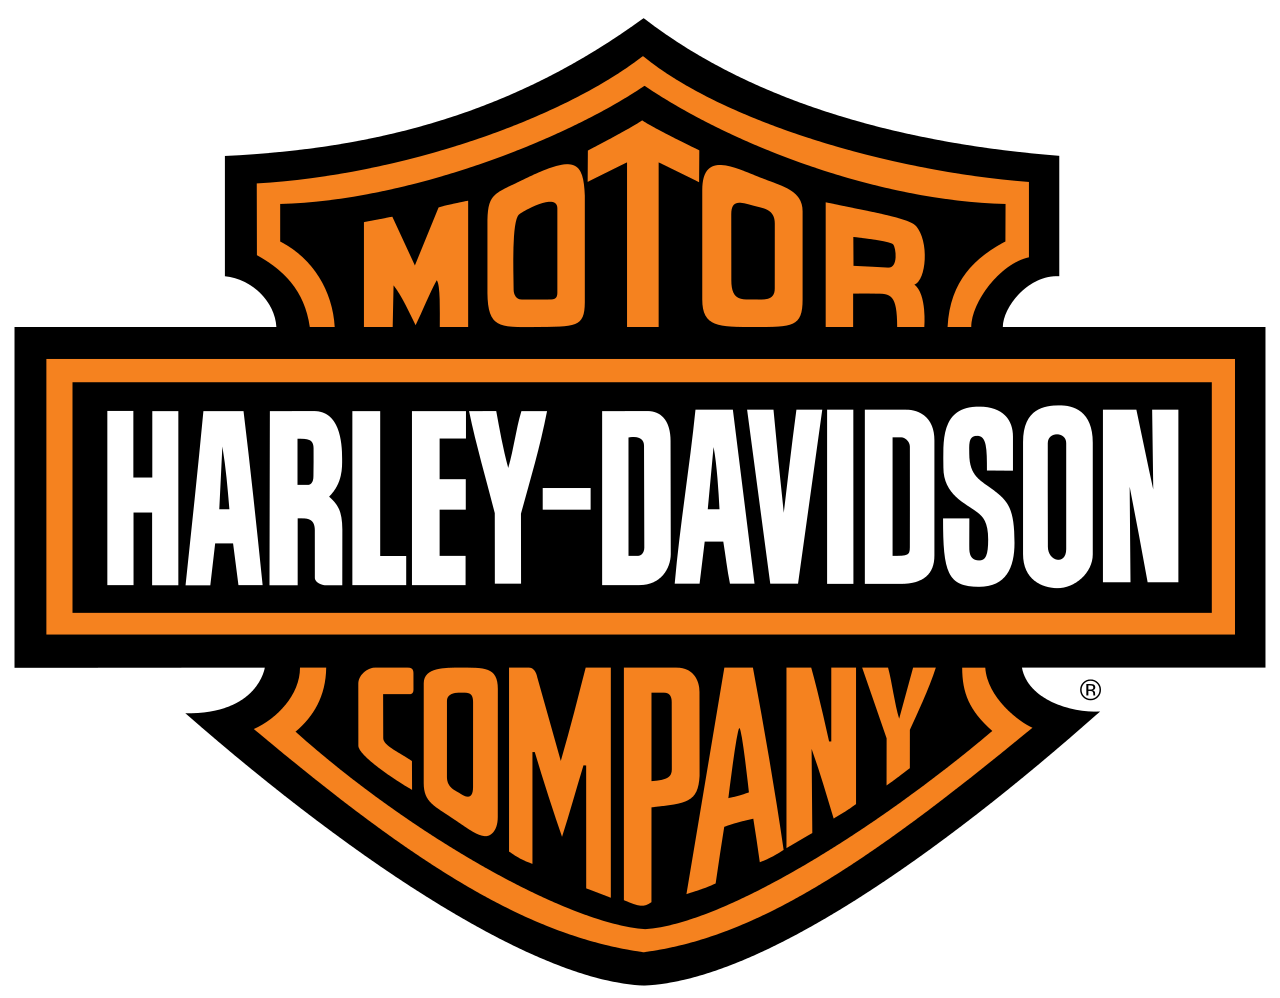 Harley-Davidson Internet Marketing Case Studies